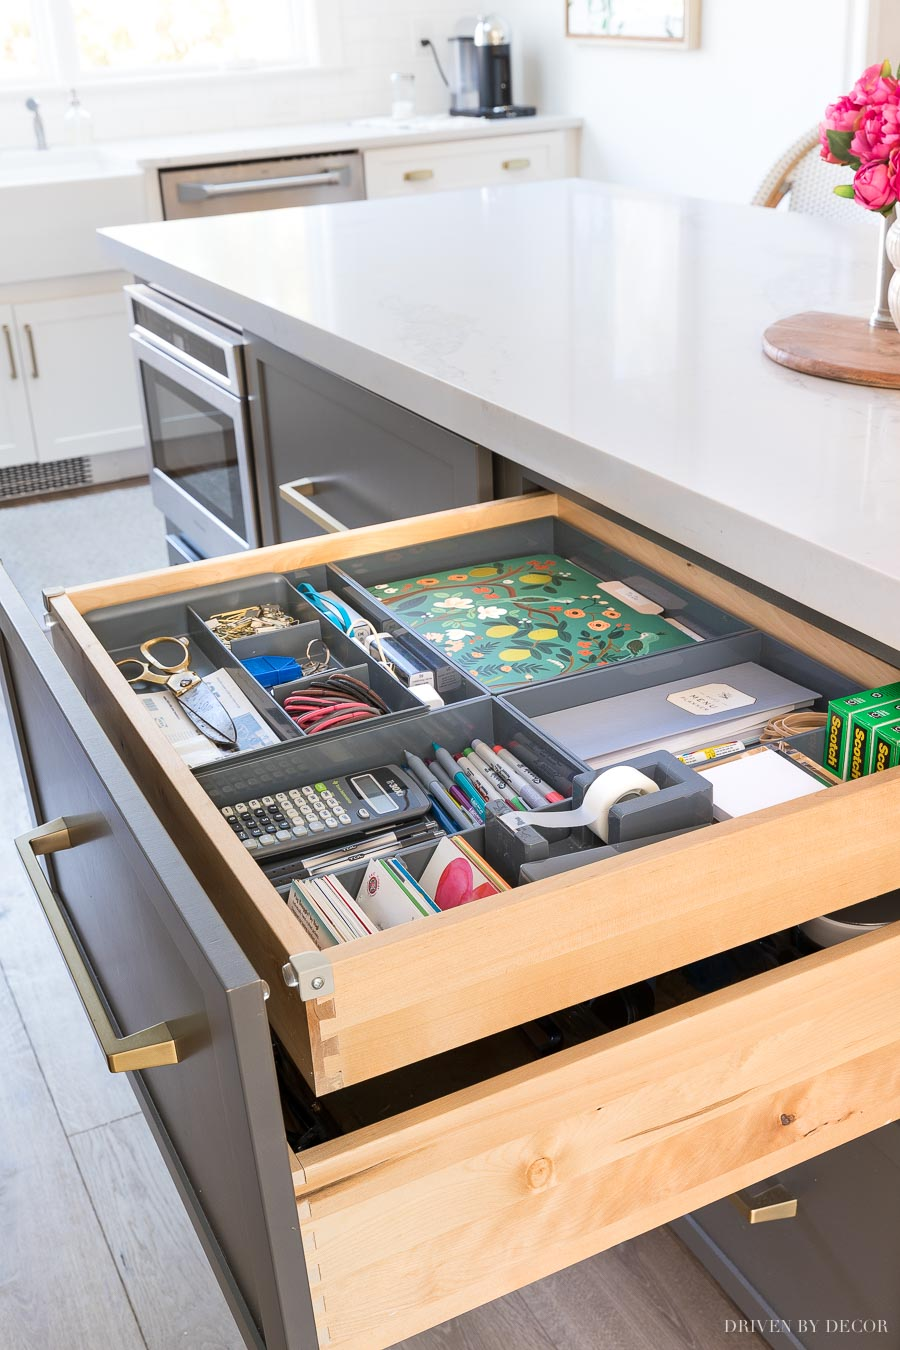 I need this! A hidden kitchen command center organized in a shallow drawer!